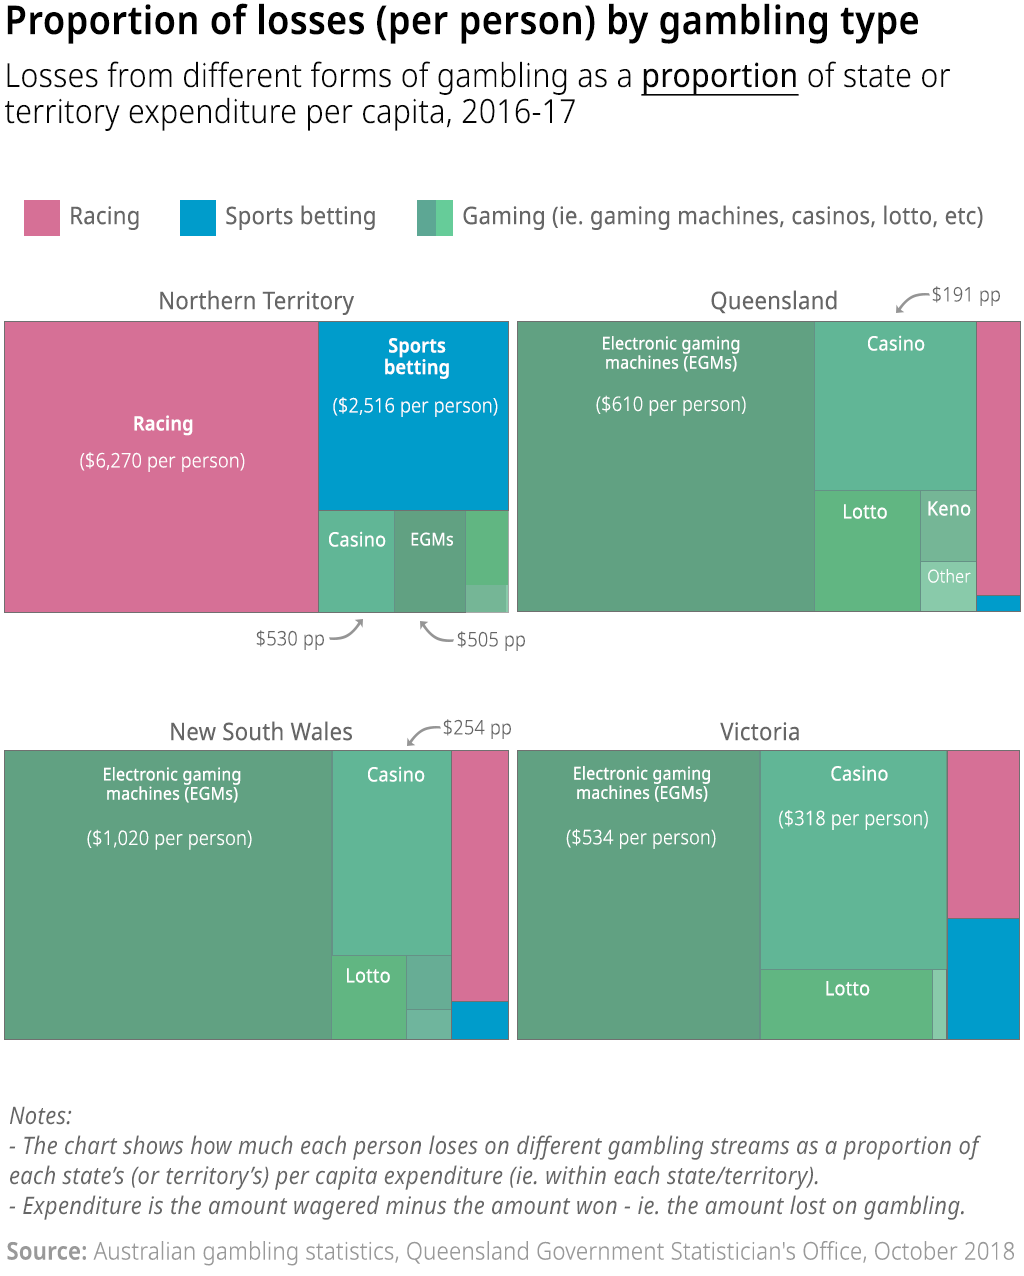 Four charts showing the losses per capita from different types of gambling as a proportion of state or territory expenditure on gambling. Charts shown for the Northern Territory, Queensland, New South Wales and Victoria, broken down into different gambling streams (2016-17).